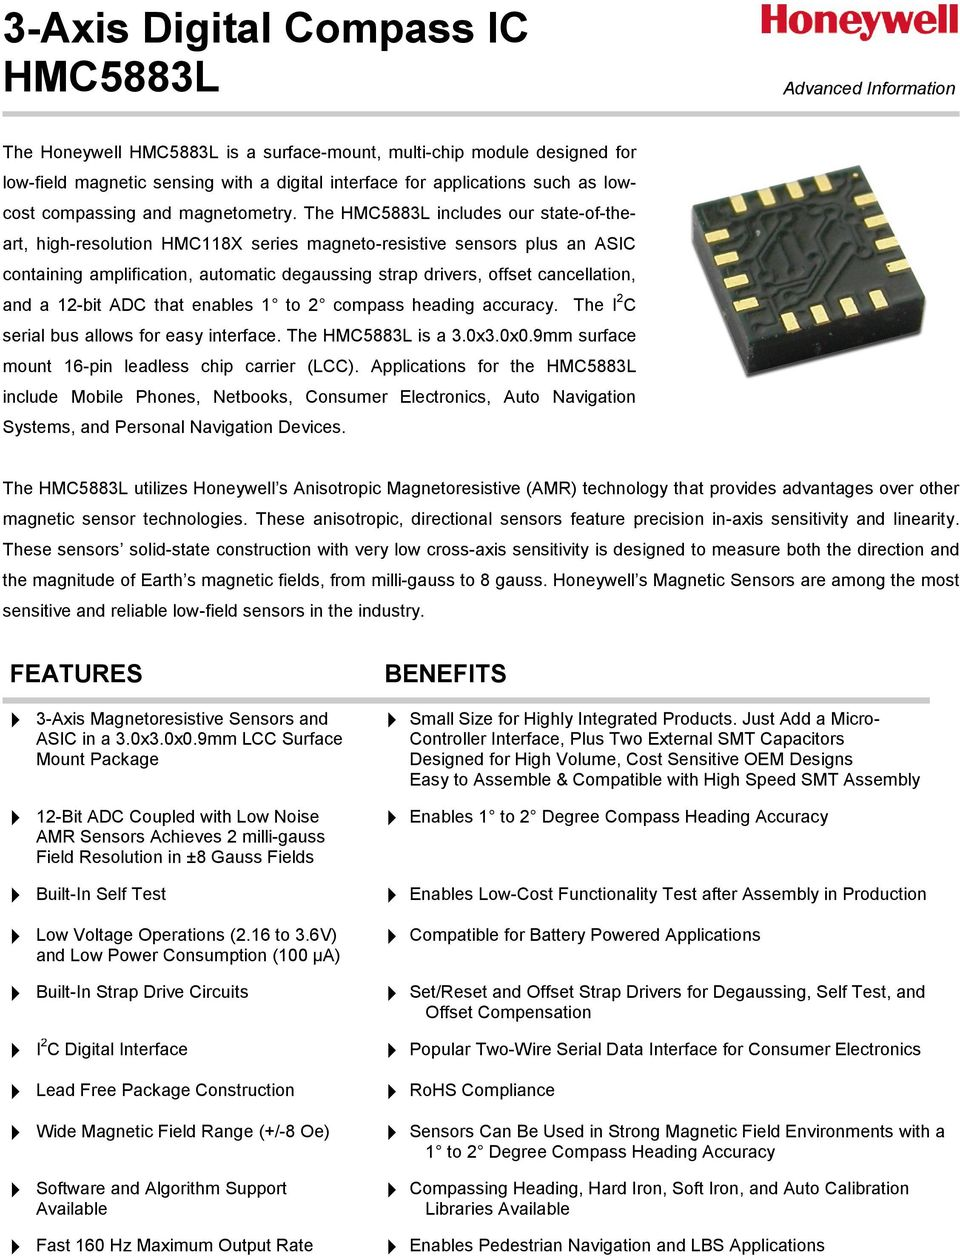 3 Axis Digital Compass Ic Hmc5883l Pdf Circuit The Includes Our State Of Theart High Resolution Hmc118x Series Magneto